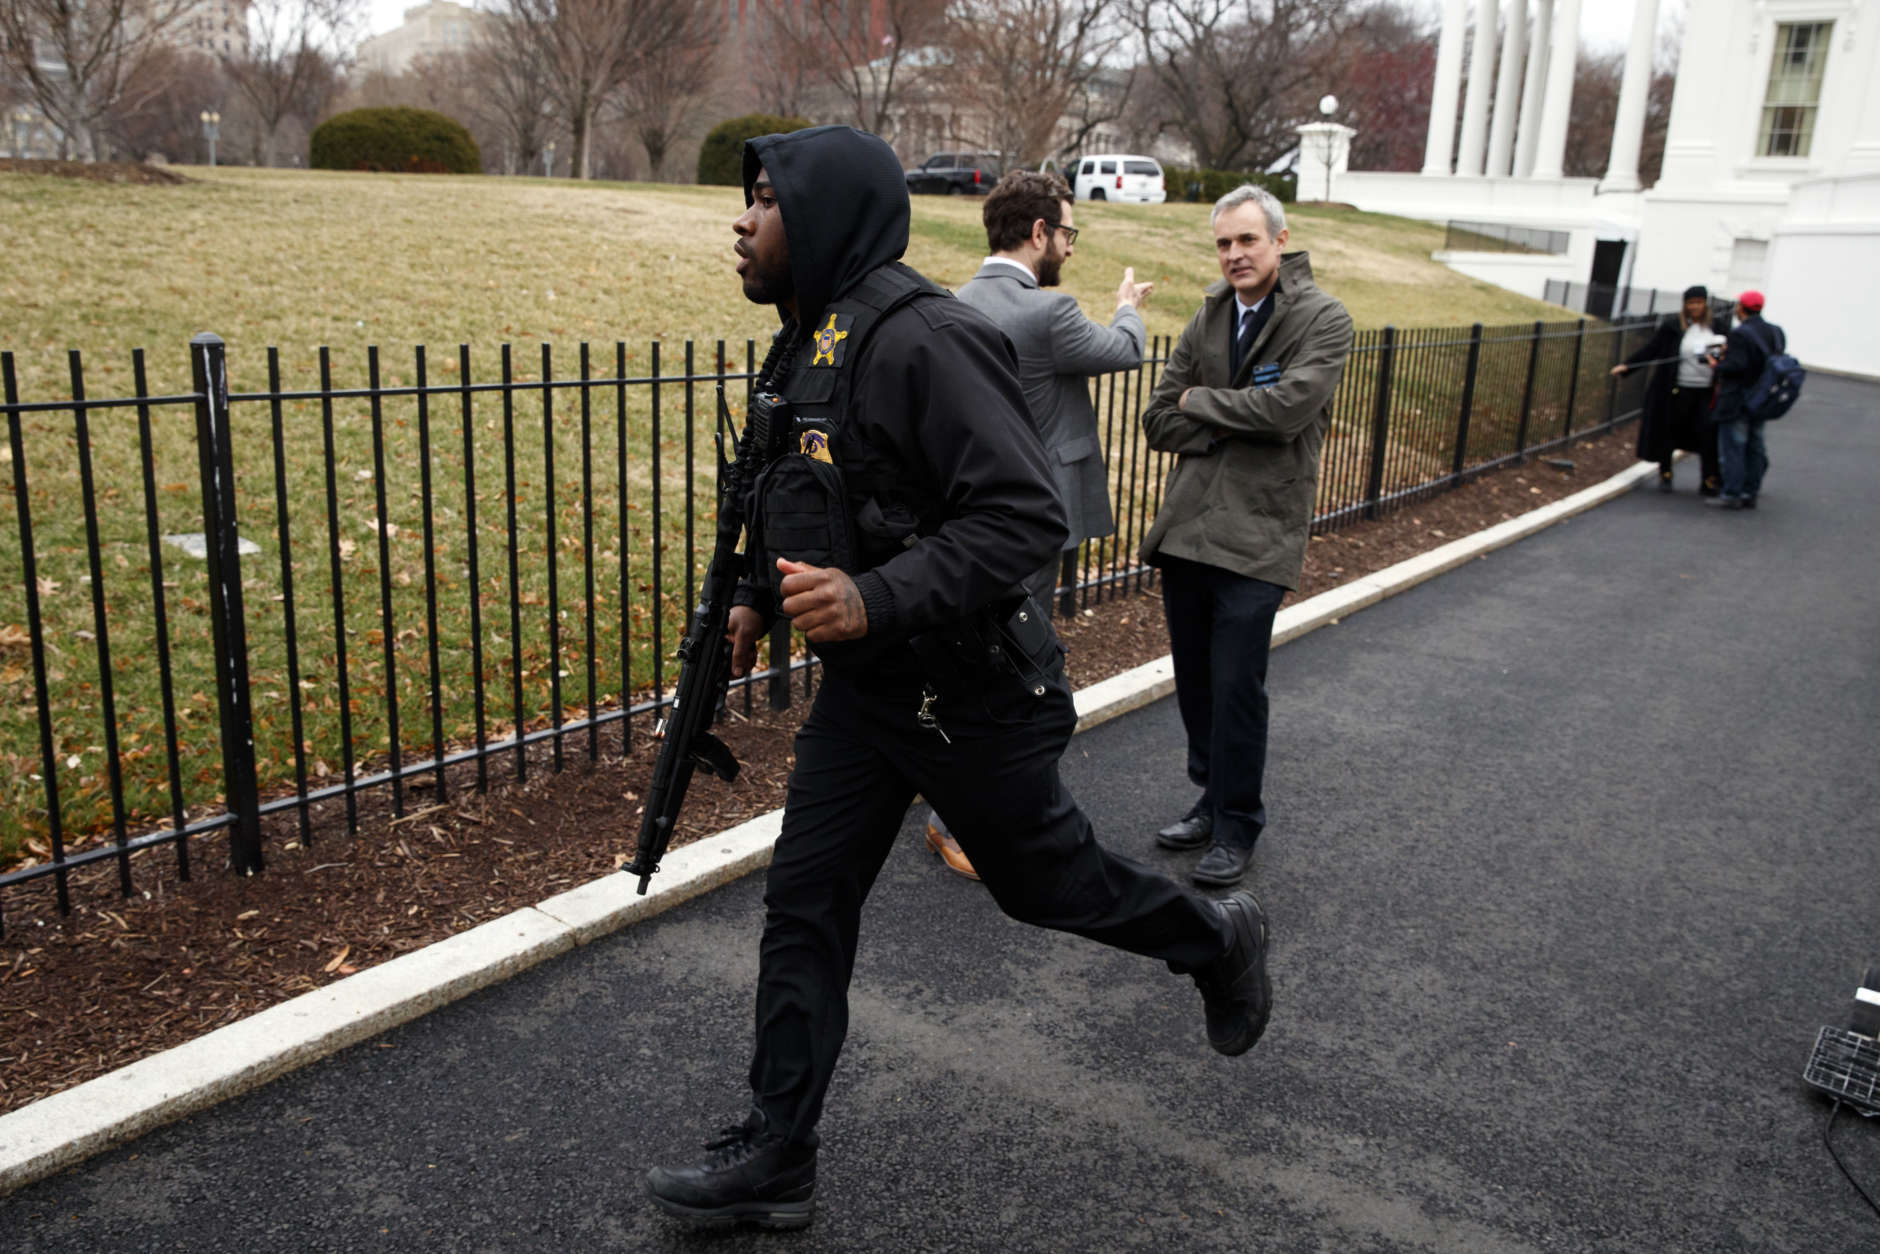 A Secret Service officer rushes past reporters after a vehicle rammed a barrier near the White House, Friday, Feb. 23, 2018, in Washington. (AP Photo/Evan Vucci)